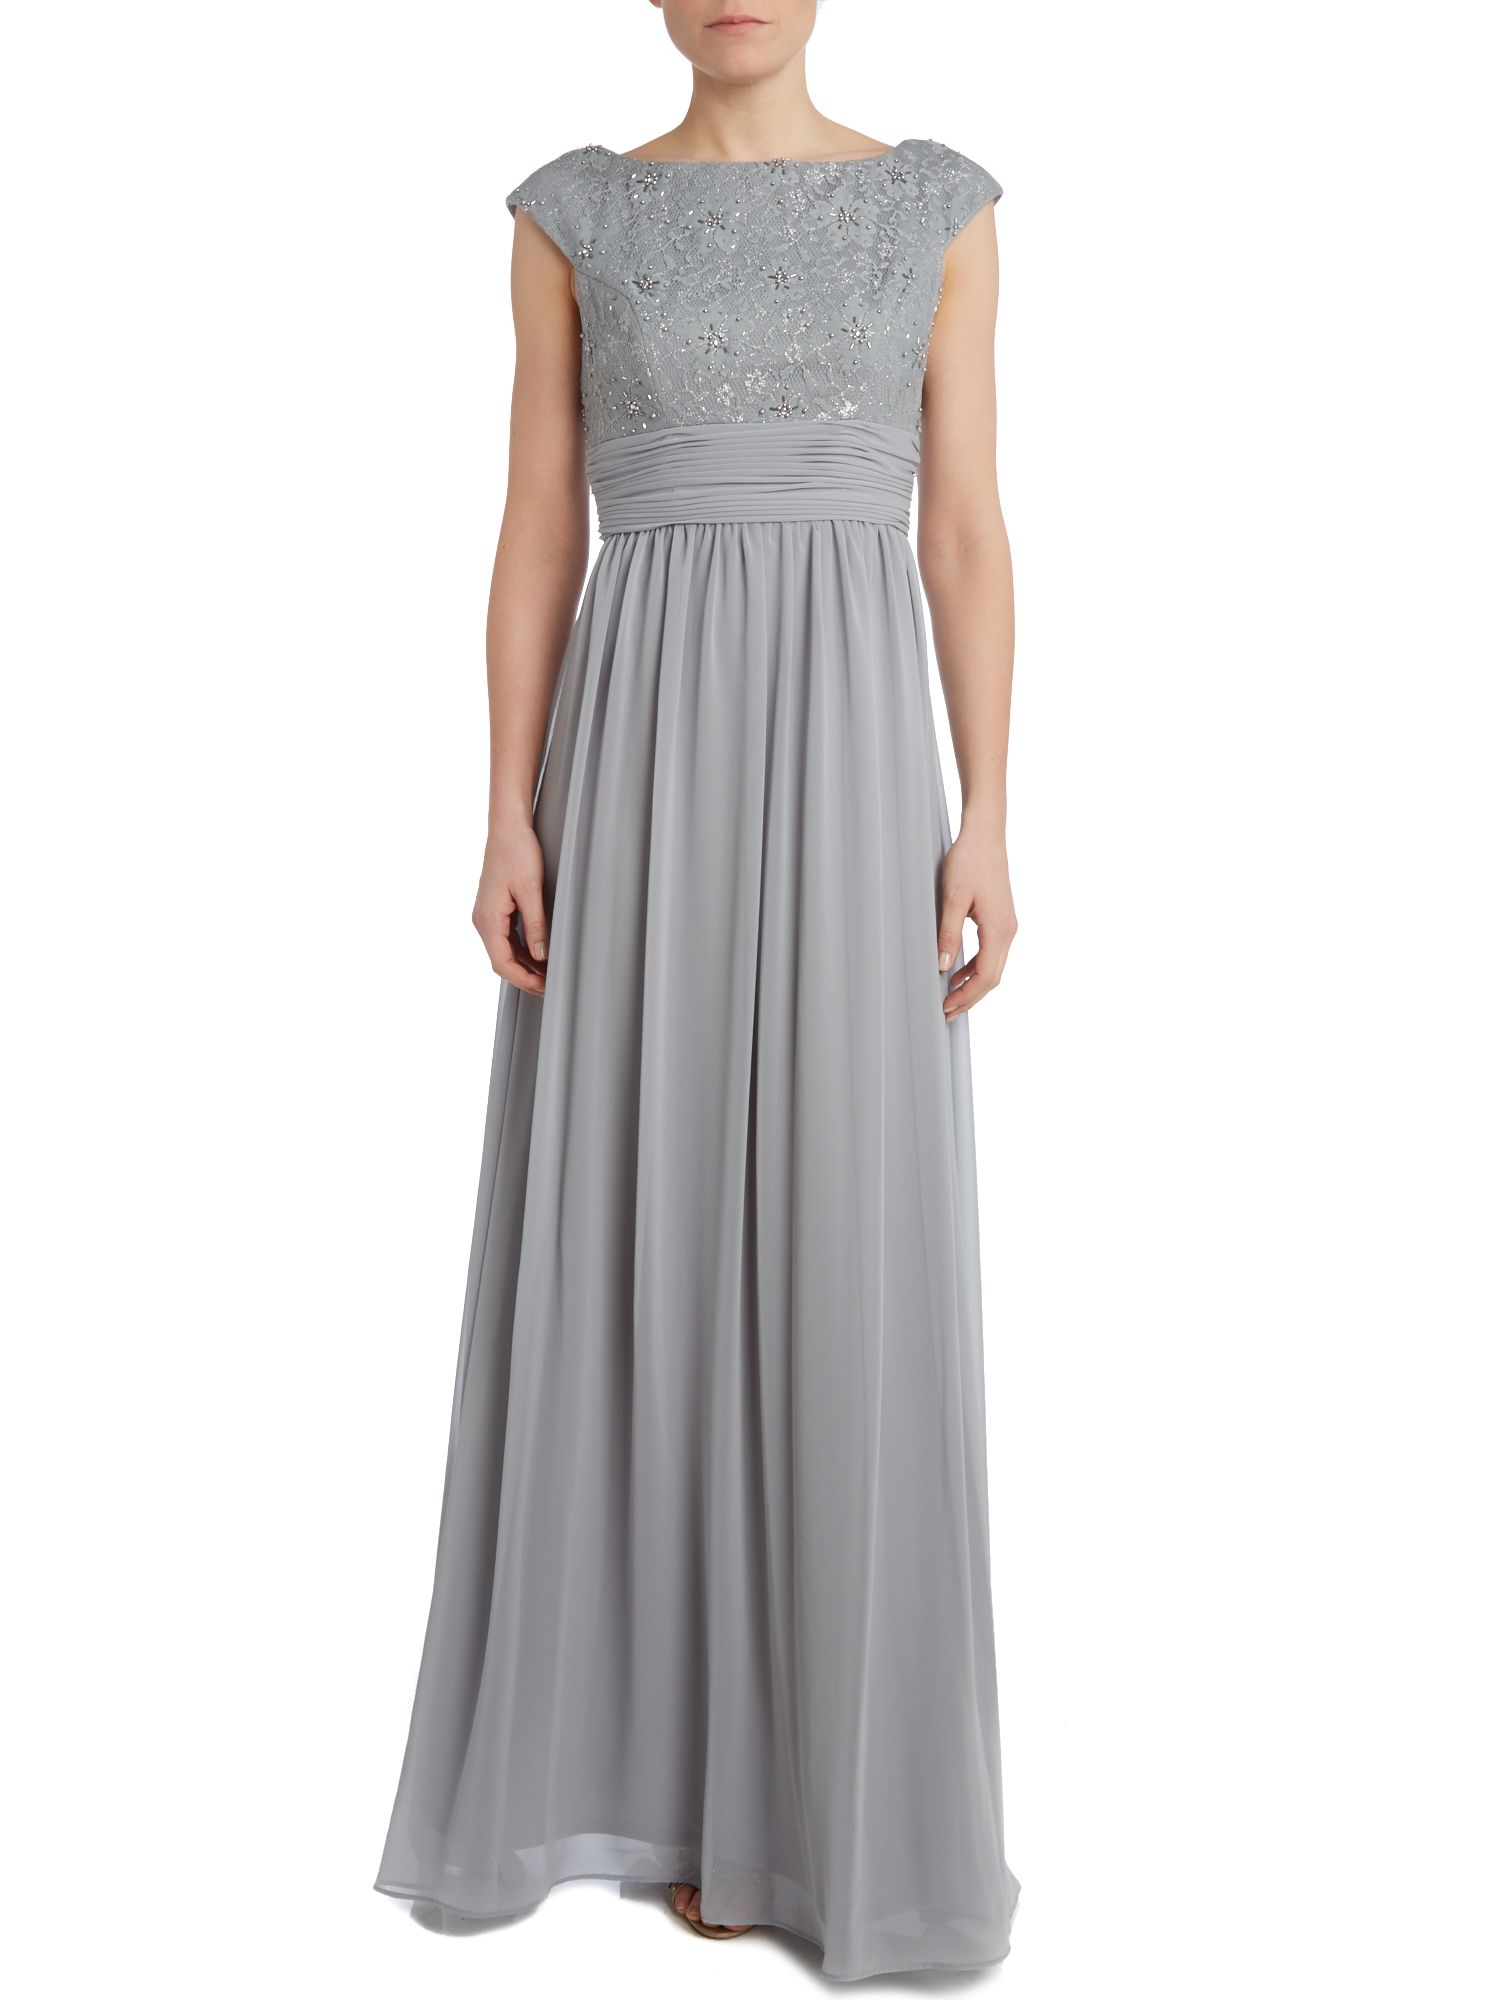 Eliza J Bridesmaid Dresses | Dress images